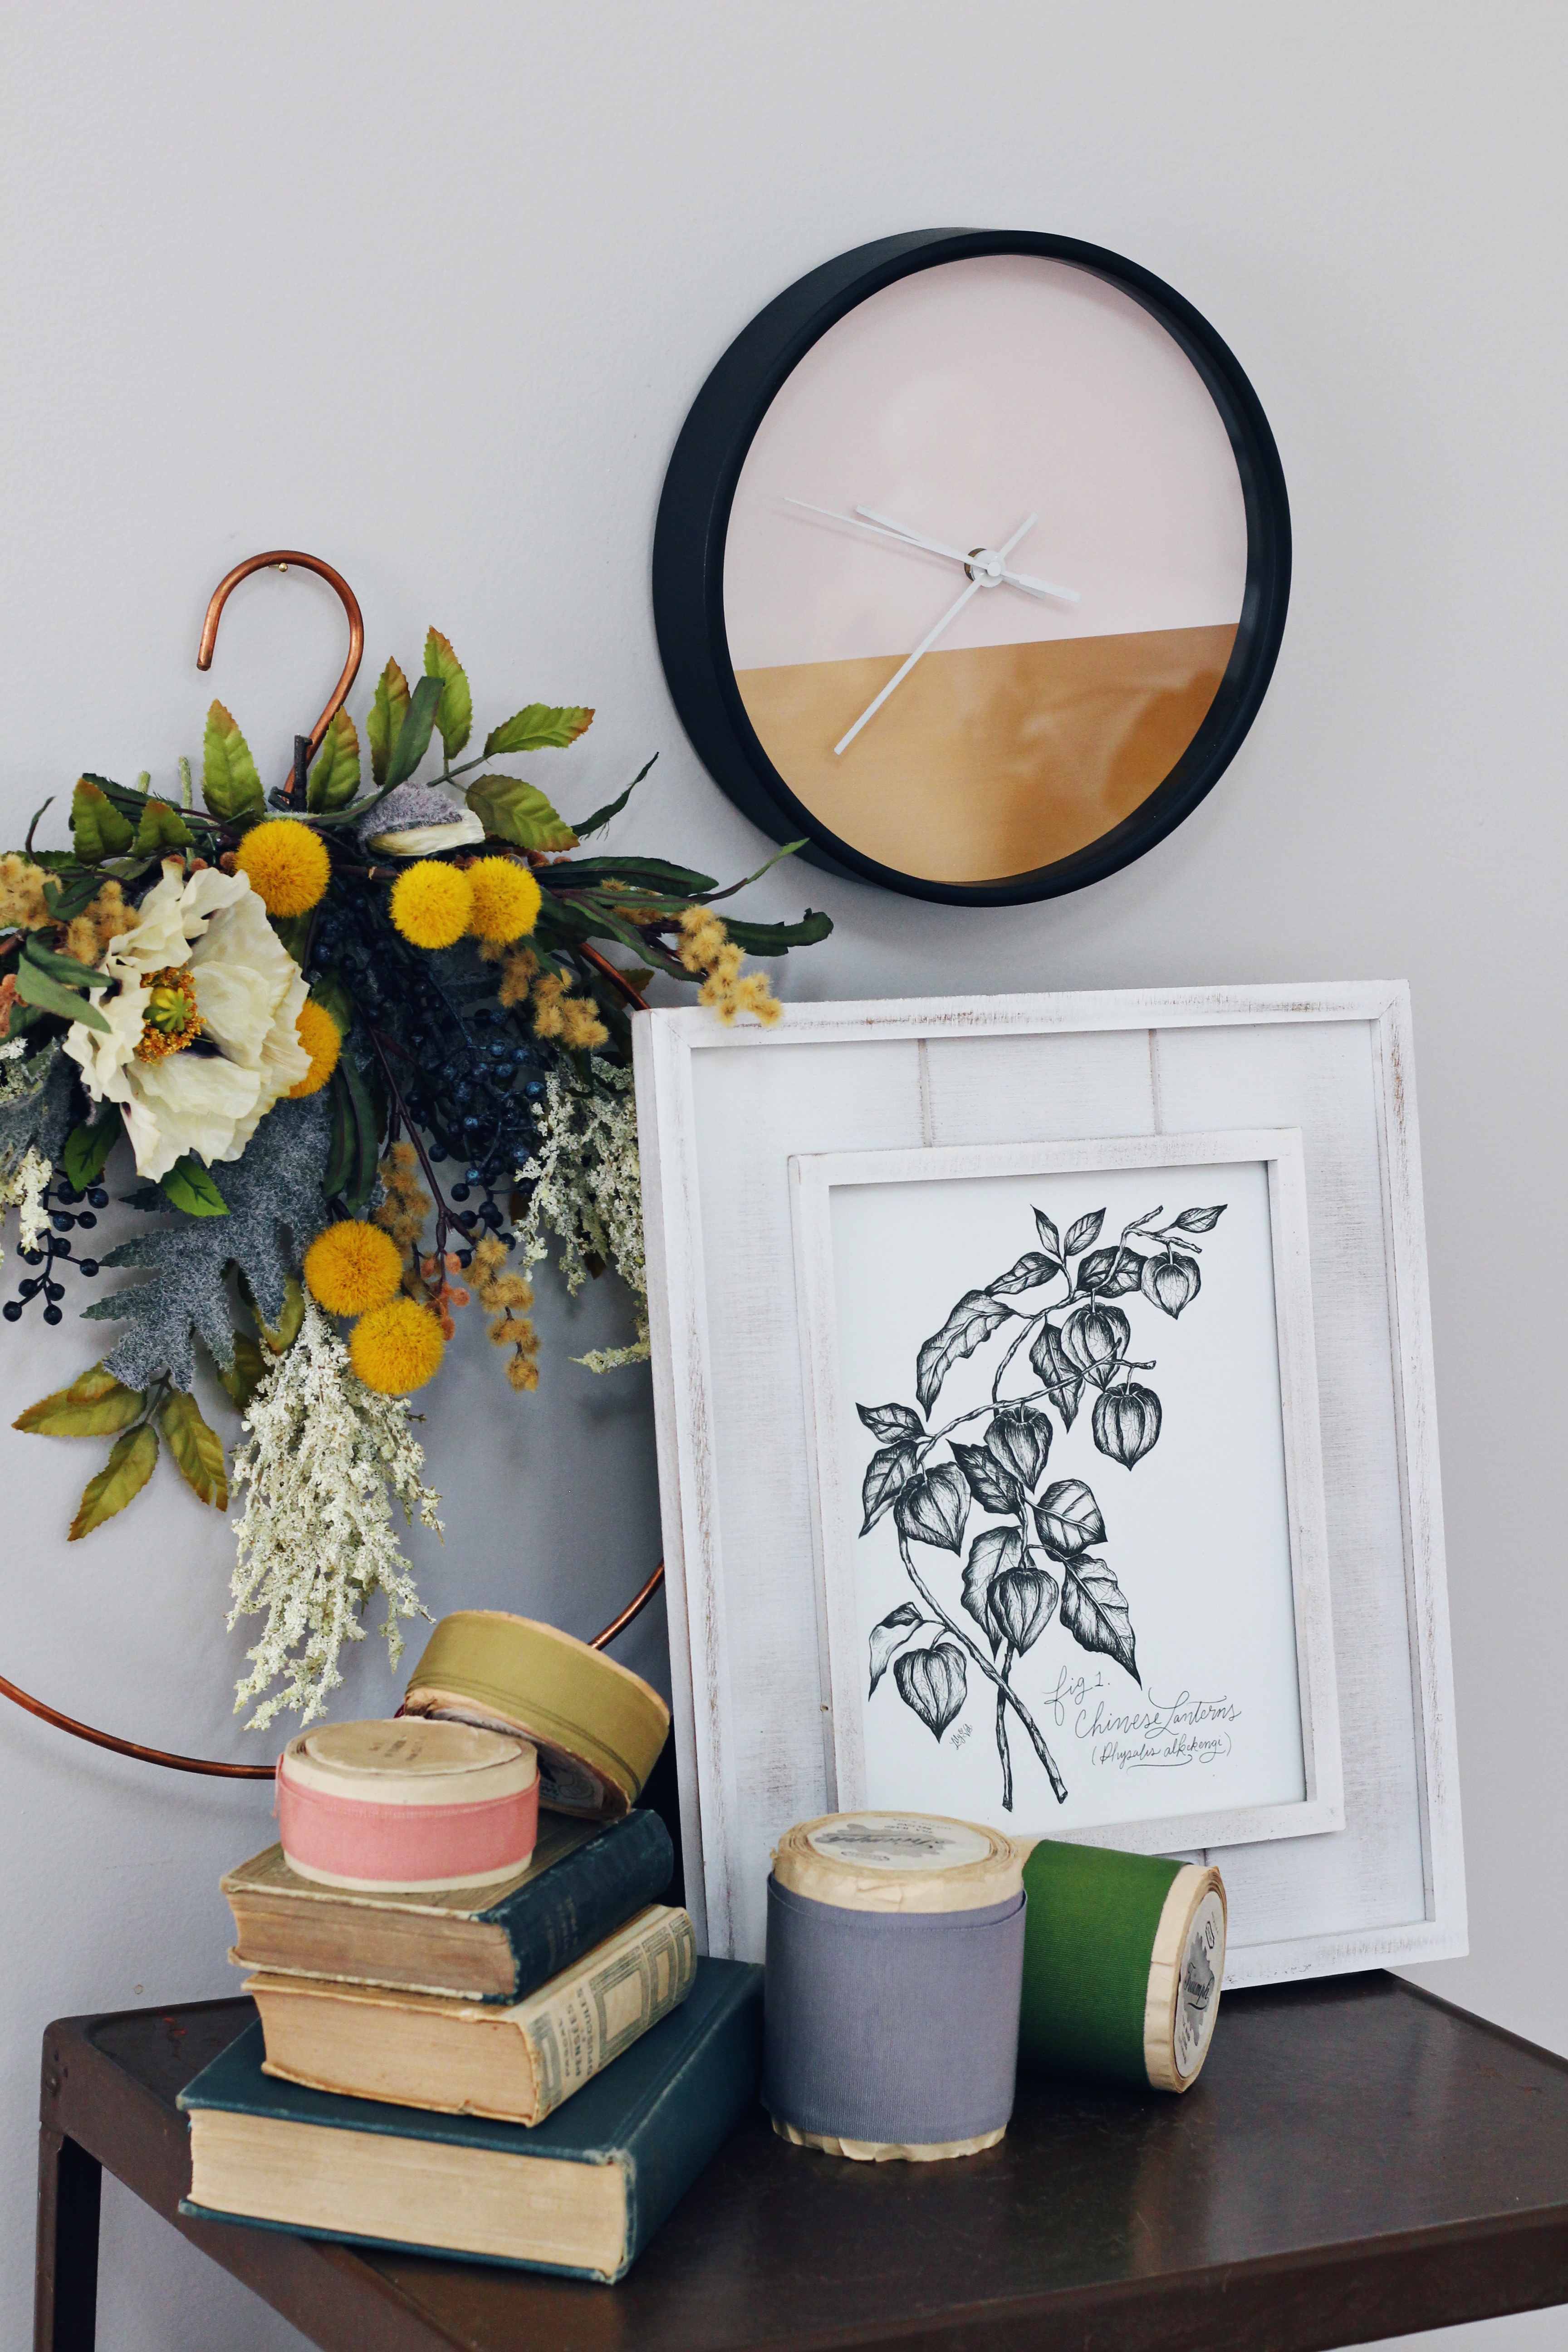 Chinese Lantern Botanical art looks beautiful displayed with a Fall wreath